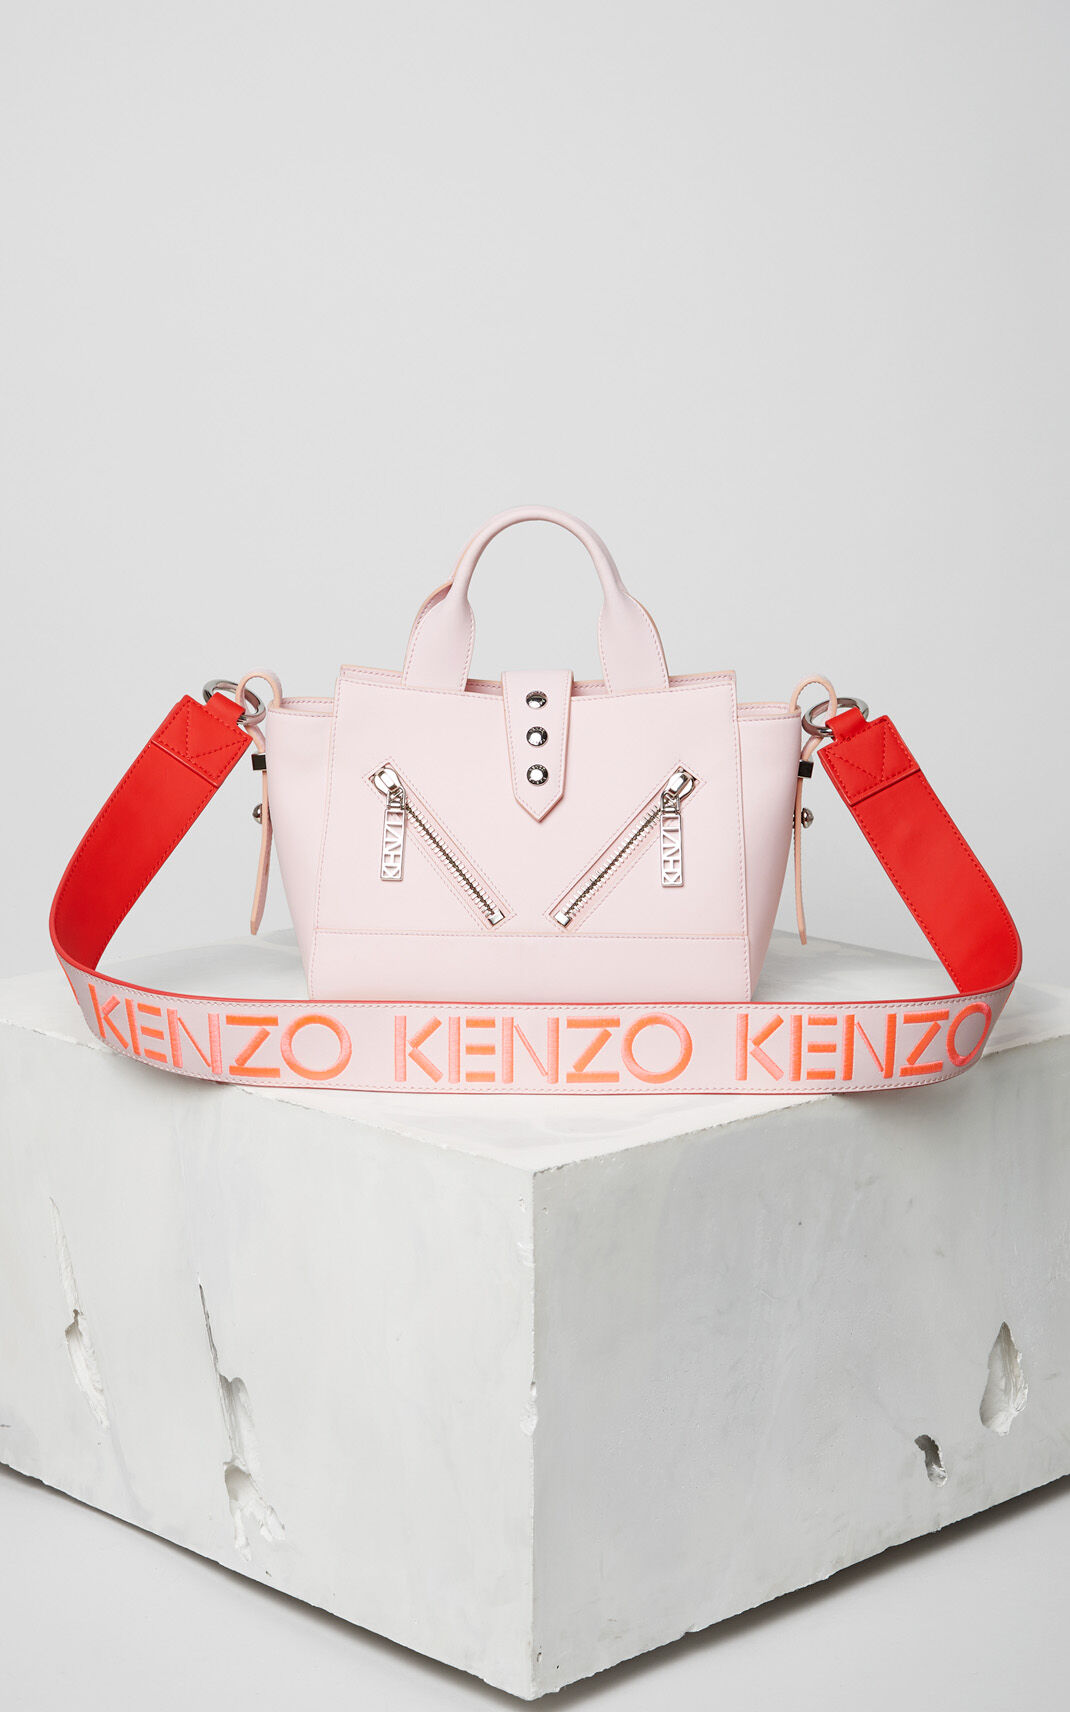 FADED PINK Strap for Mini Kalifornia for unisex KENZO